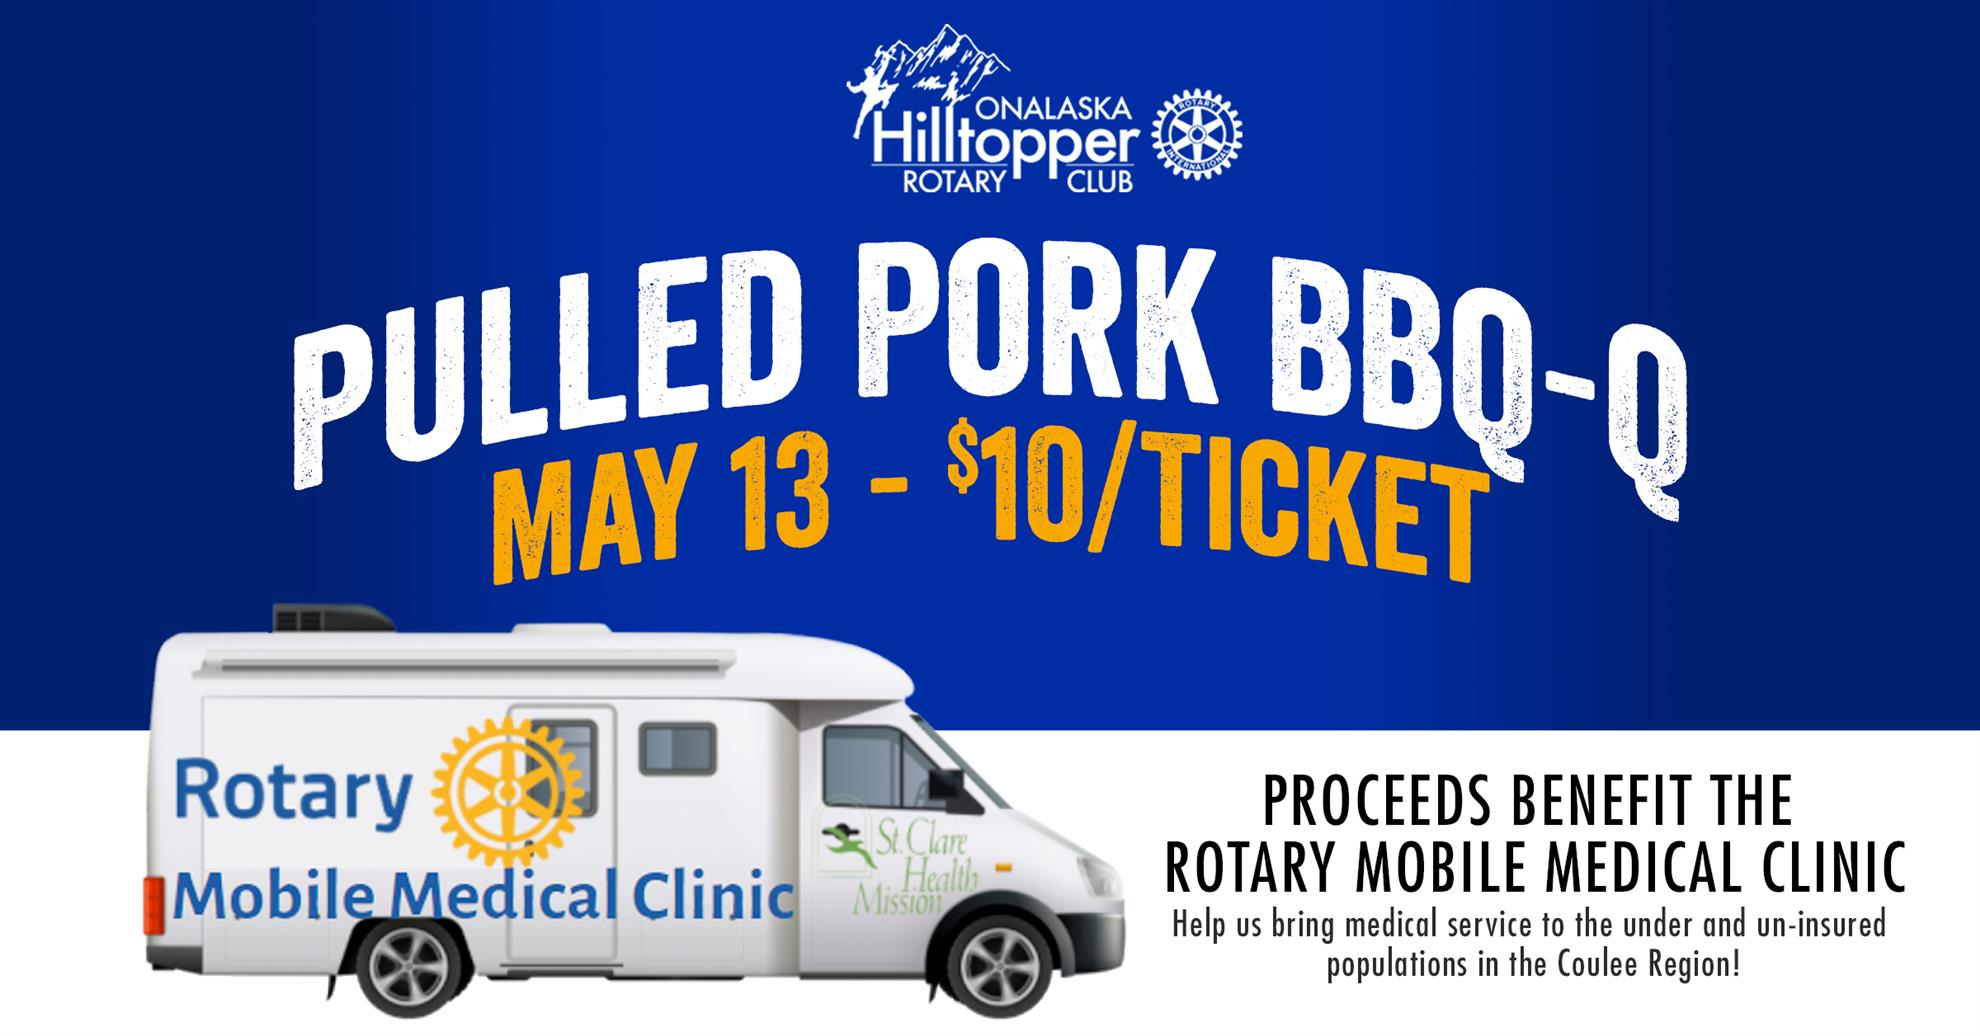 Pulled Pork-Q on May 13 - Tickets are $10 - Benefiting the Rotary Mobile Medical Clinic.